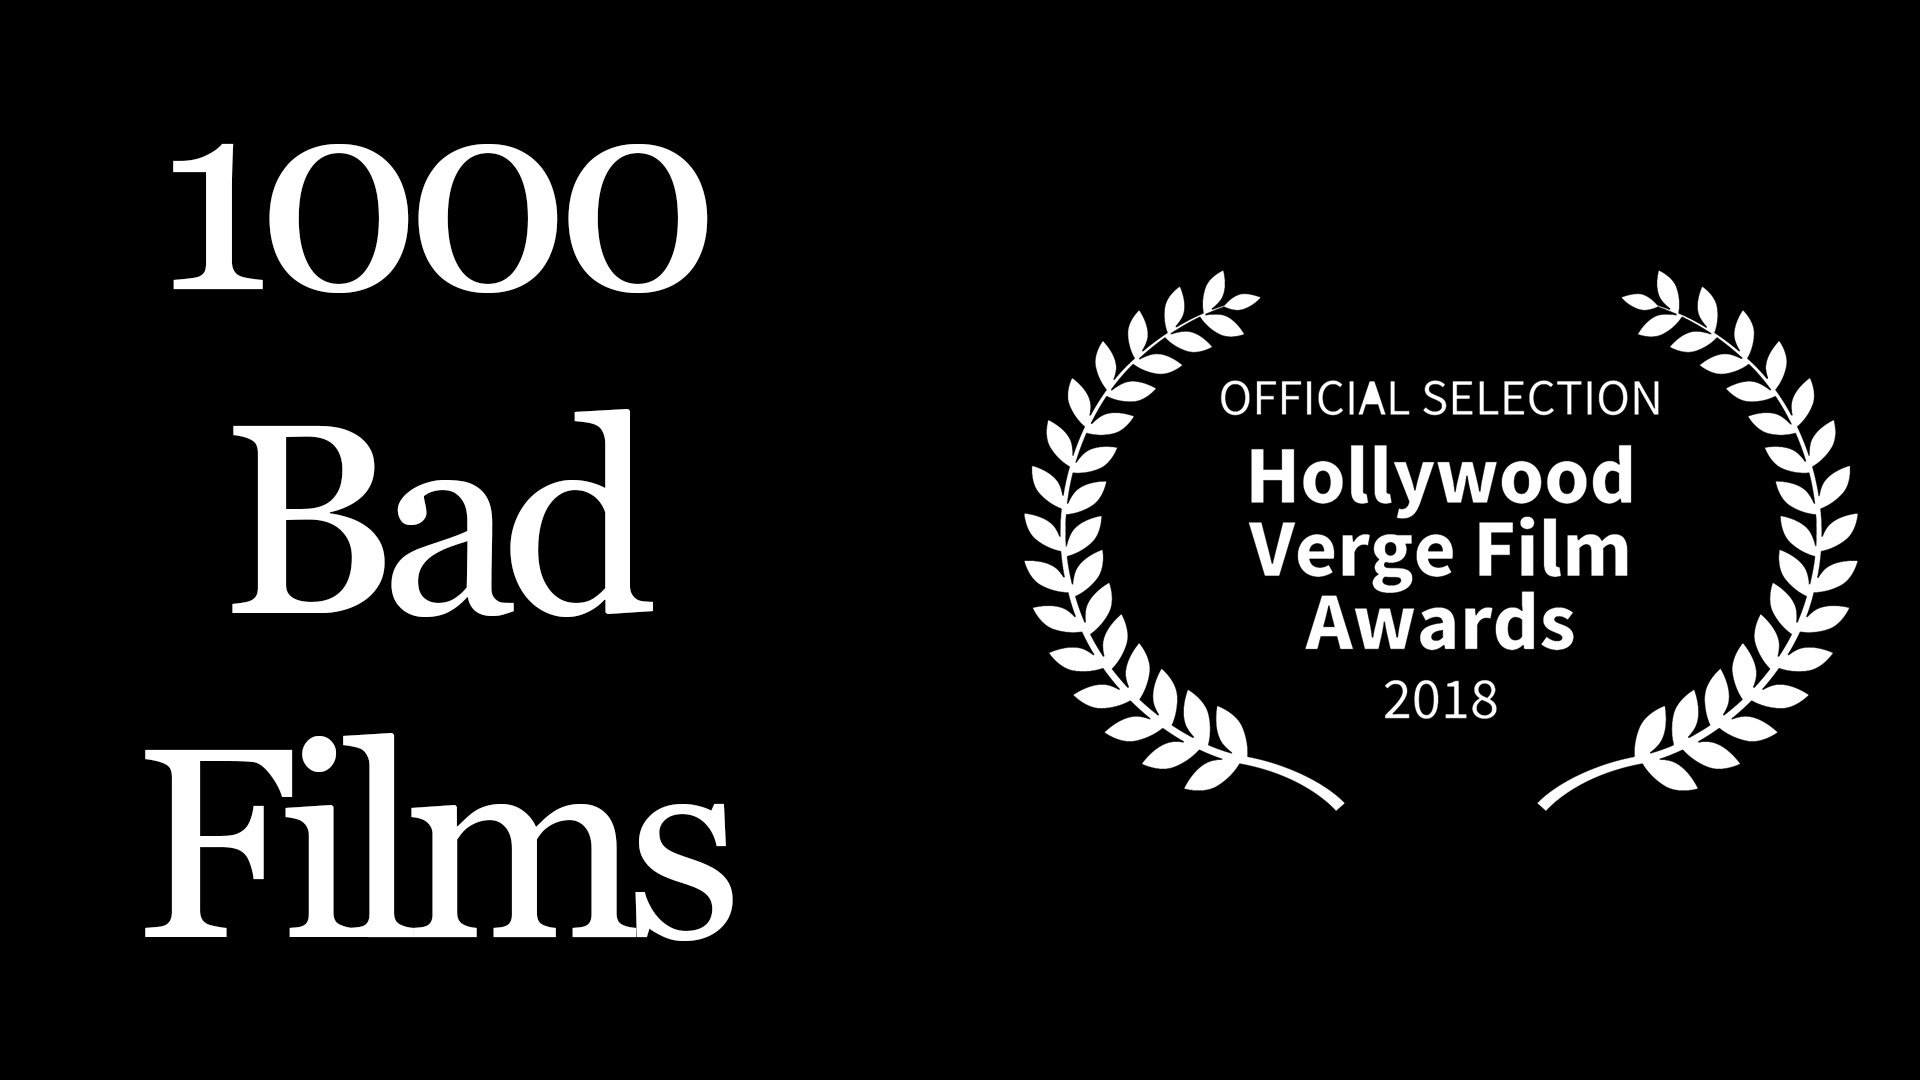 1000 Bad Films (2018) - I directed, edited and designed this project. It's a documentary about my insecurities not only as a filmmaker, but also as a person.Run Time - 8 minutes 50 seconds